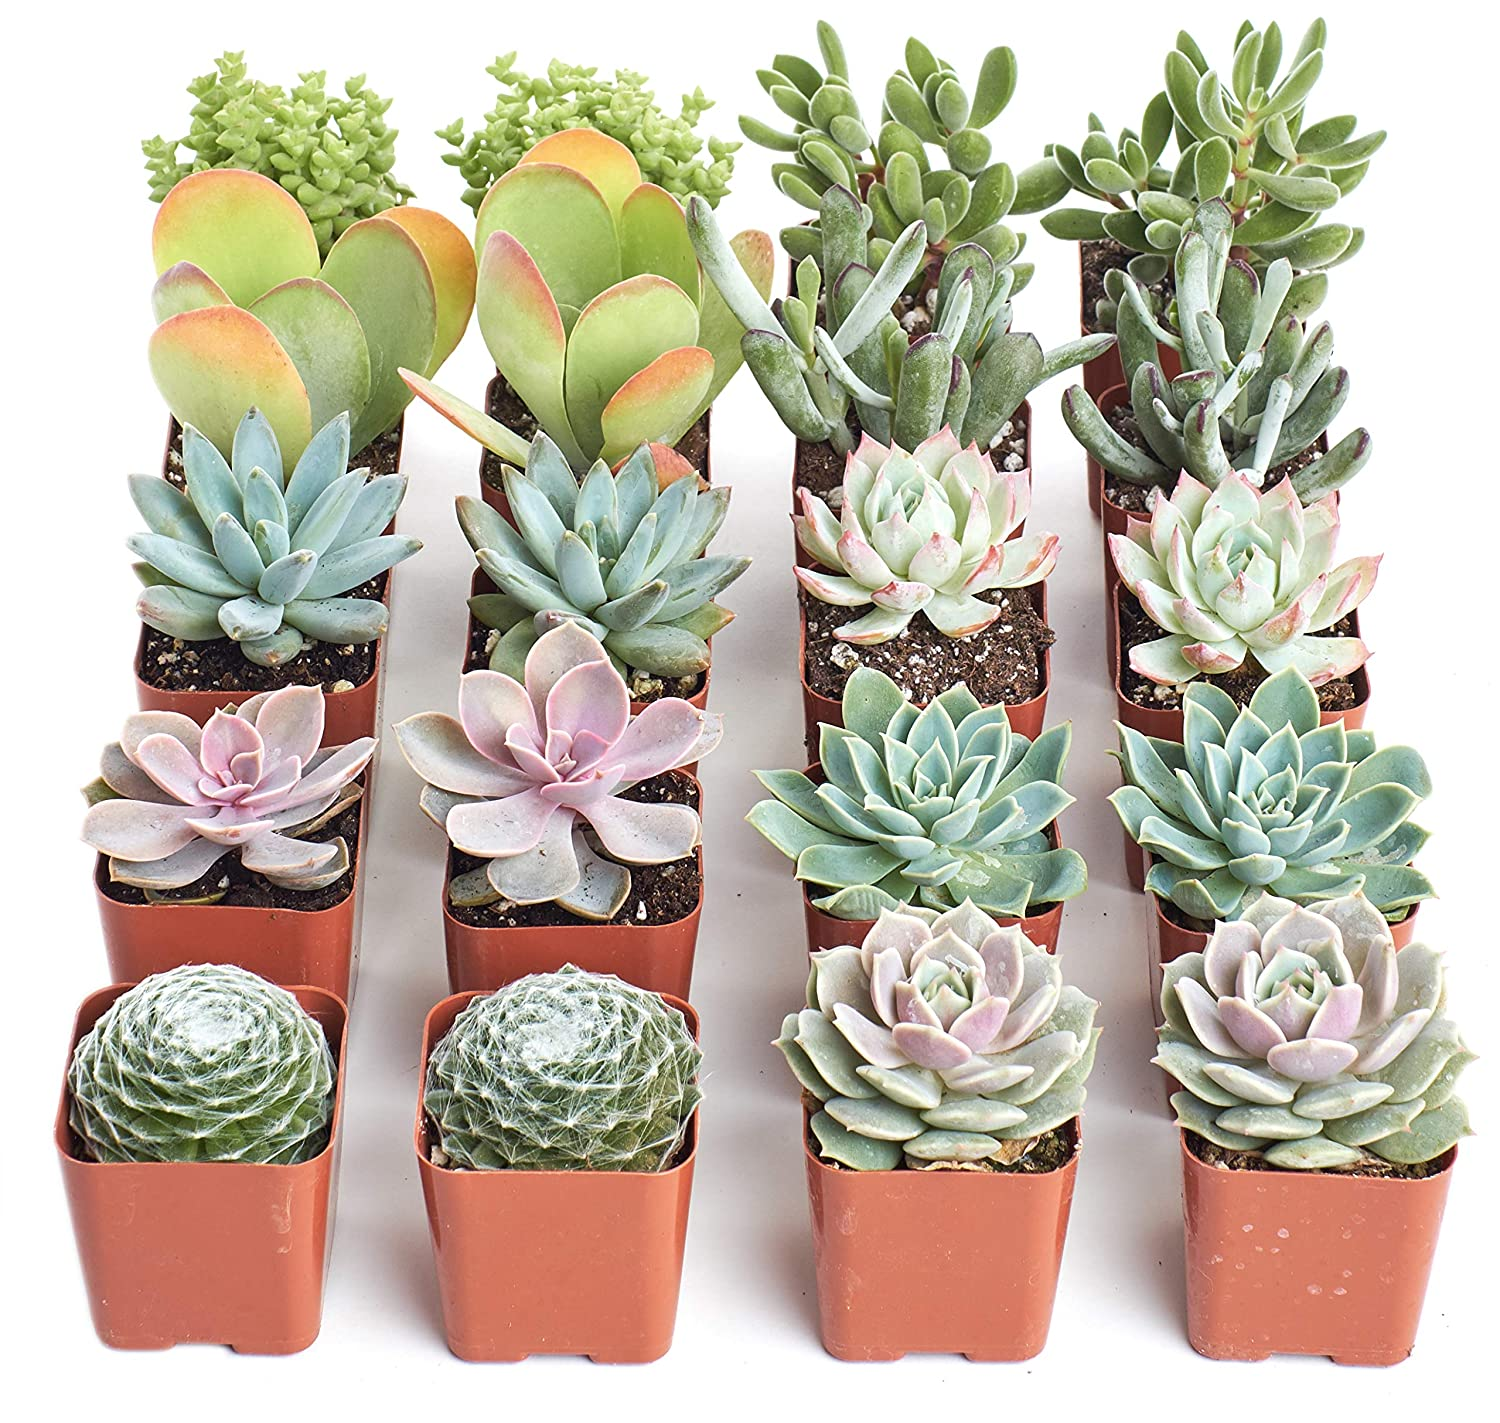 Hand Selected Variety Pack of Mini Succulents Premium Pastel Collection of Live Succulent Plants Collection of 4 Shop Succulents